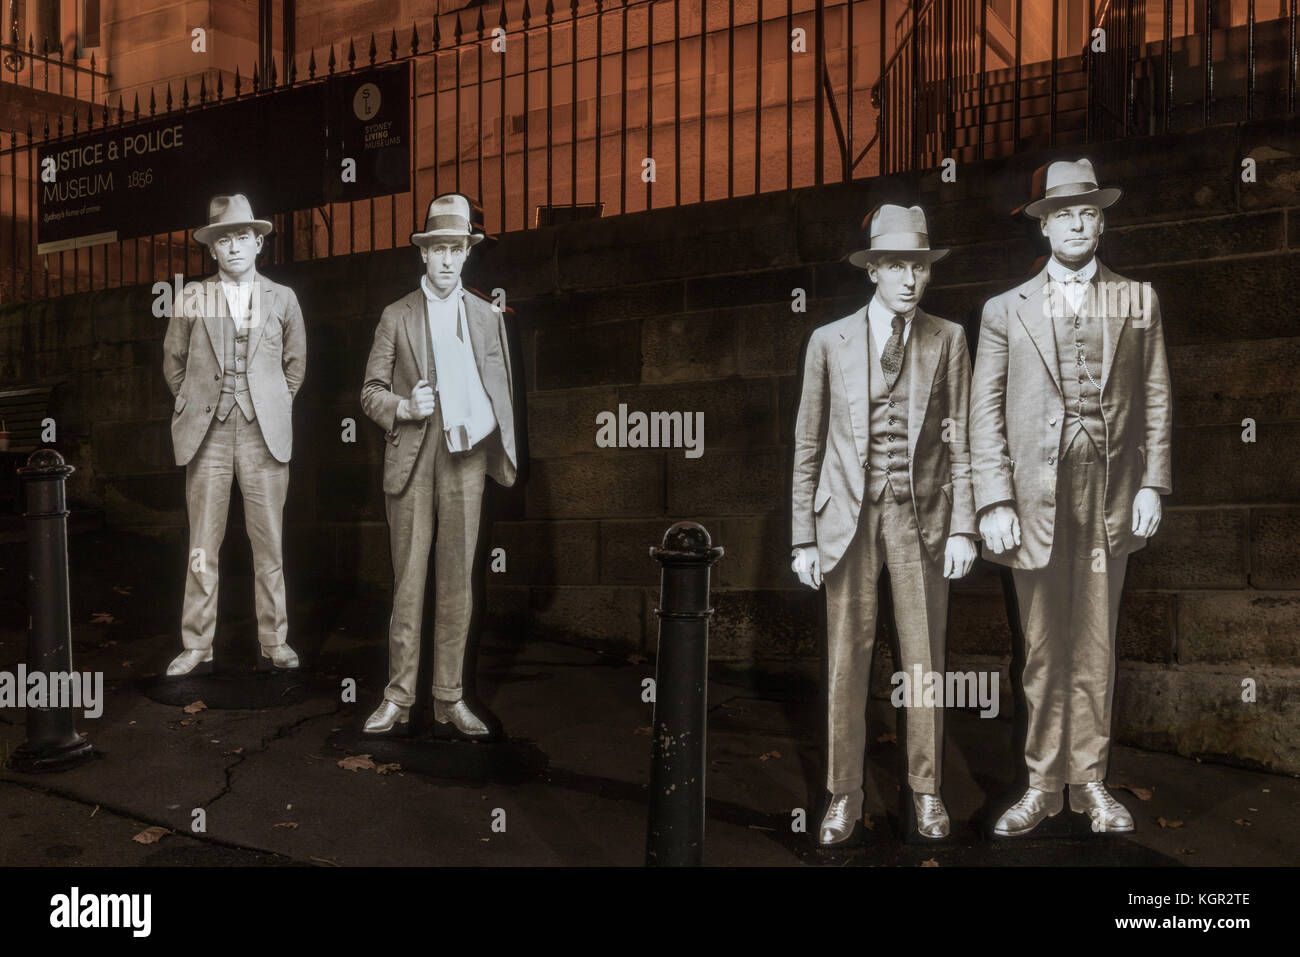 Sydney, Australia - March 24, 2017: Life size hologram of four detectives on corner of Albert and Phillip Streets Stock Photo